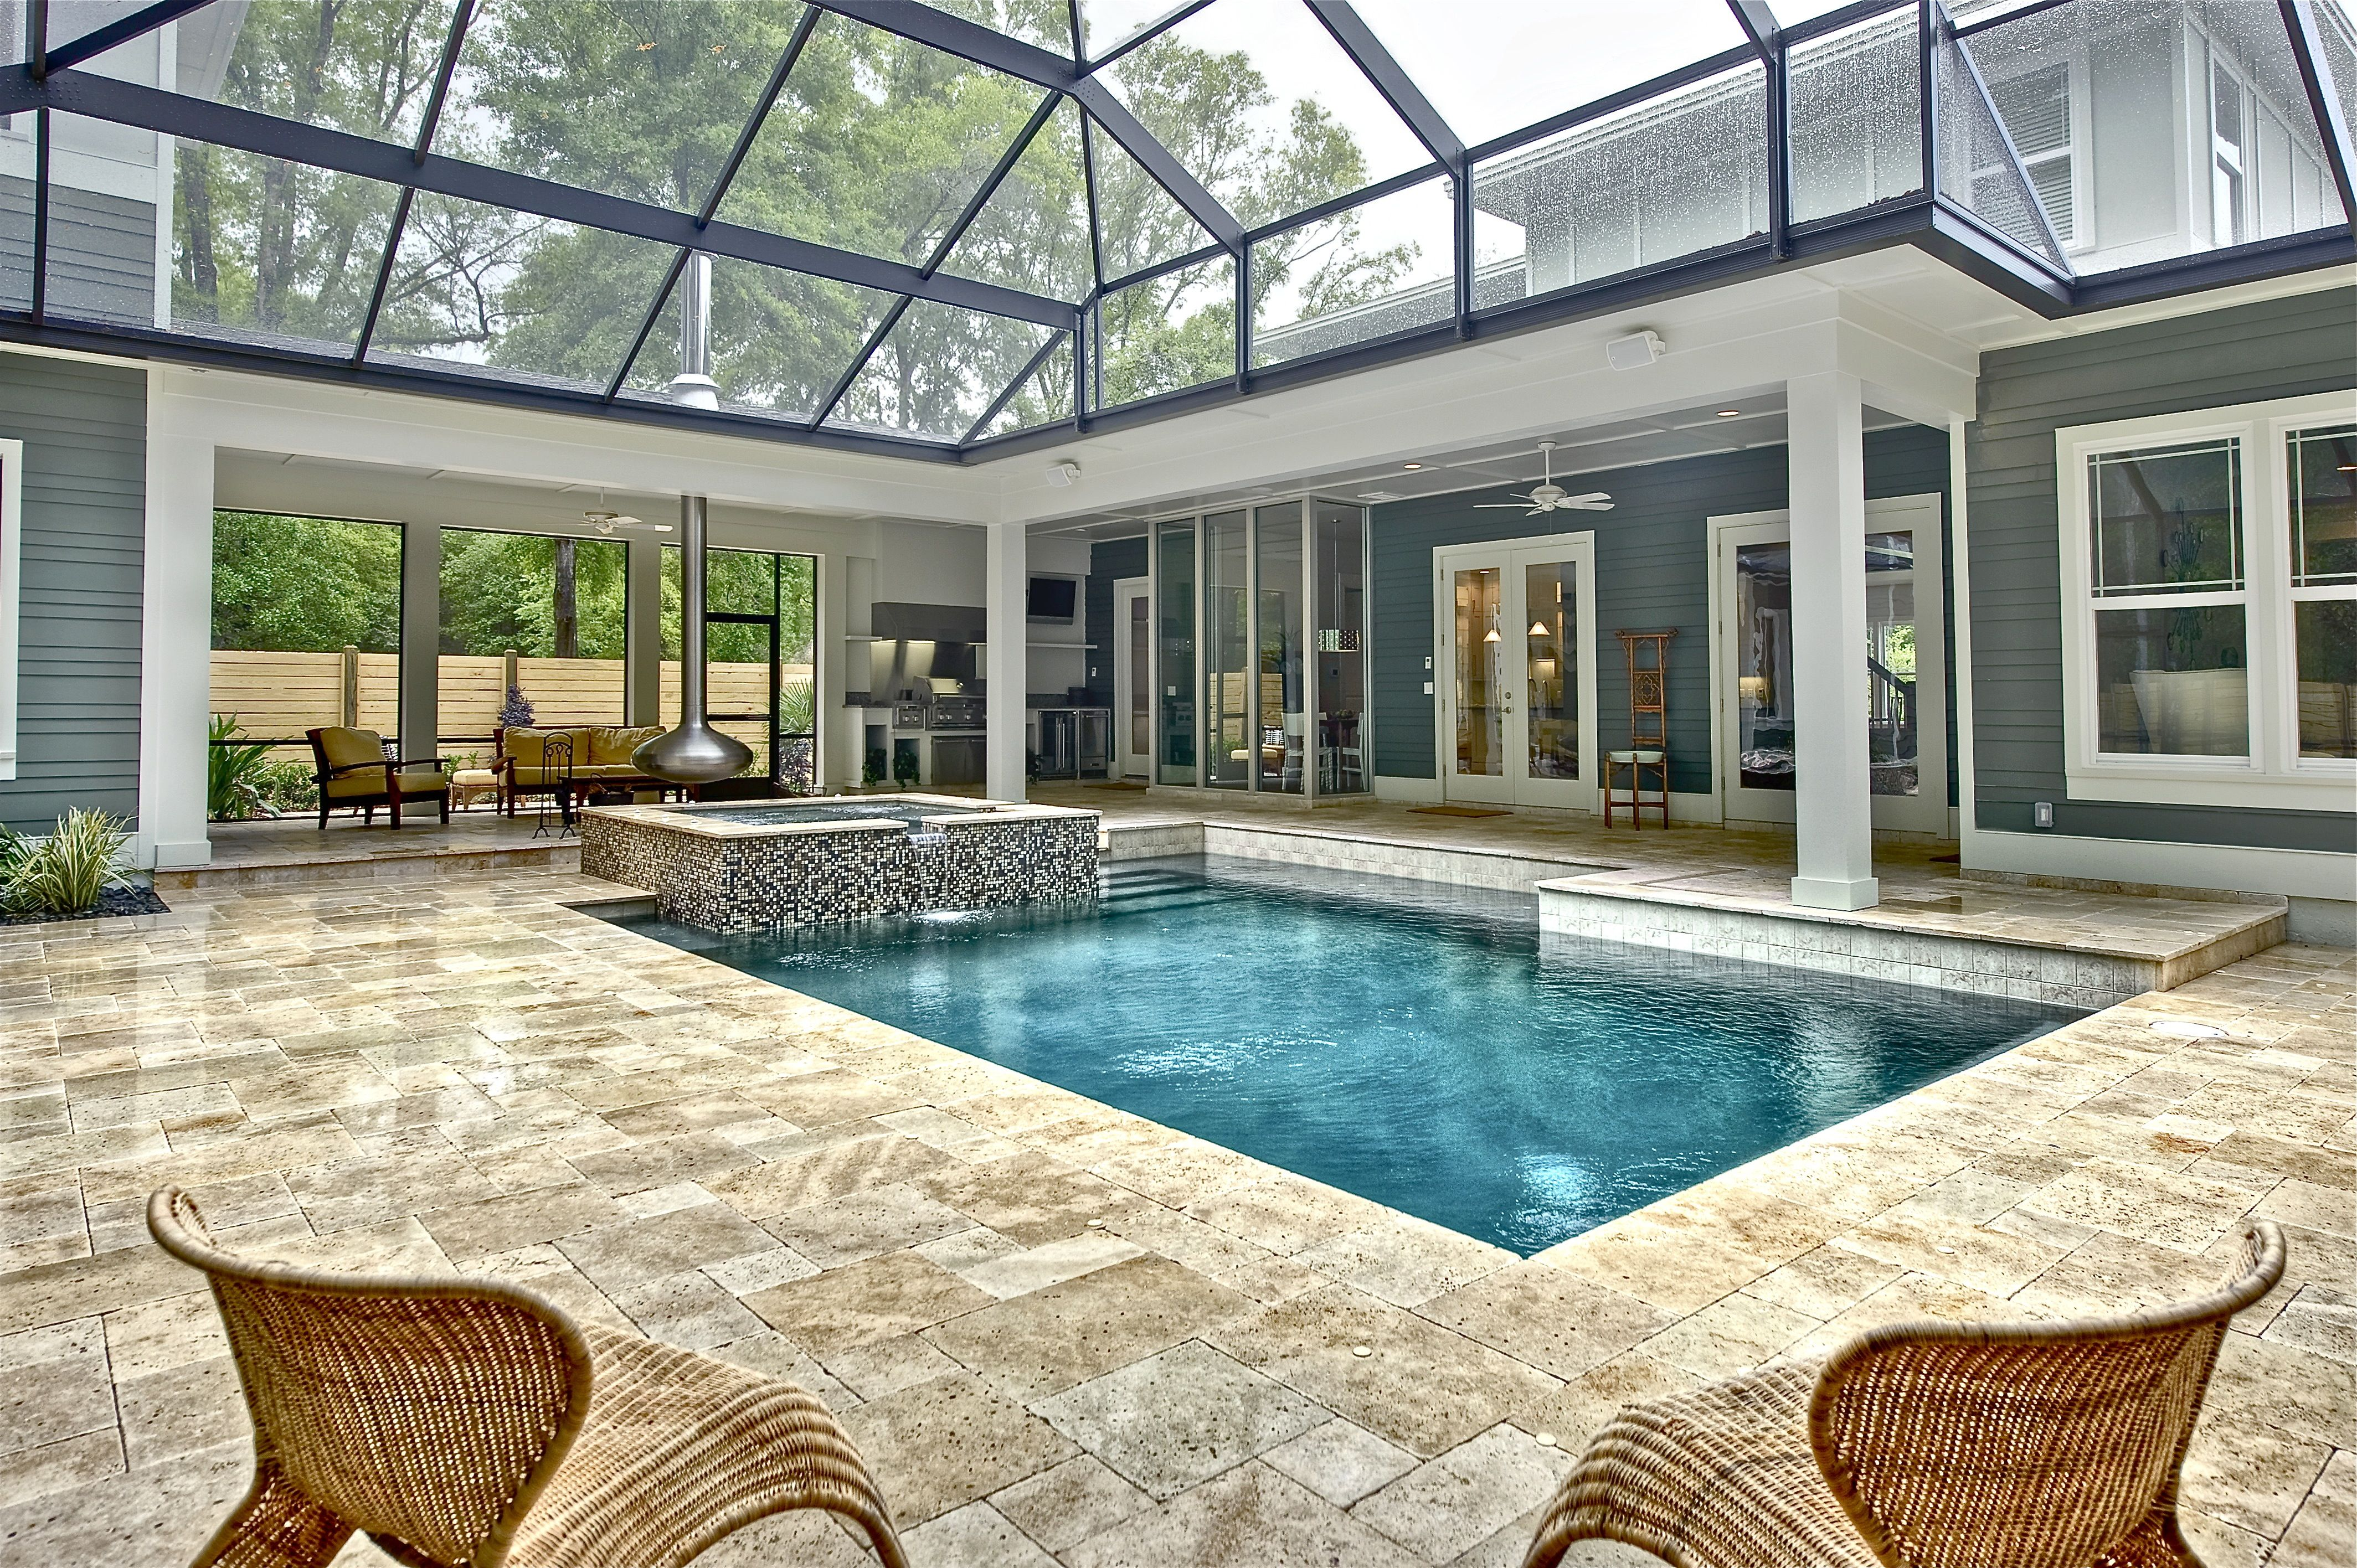 30e7056f3775124b013266475a2fece9 Round House Plans With Enclosed Pool on home plans with interior pool, house plans with outdoor pool, house plans with enclosed yard, mansion floor plans with pool, florida house plans with pool, home basement pool, u shaped home plans with pool, modern home plans with indoor pool, luxury home plans with indoor pool, house plans with pool bar, house plans with courtyard pool, house plan around a pool, house plans with pool in center, house plans with enclosed courtyard, indoor lap pool, house plans with private pool, house plans built around pool, house plans designed around pool, house with swimming pool, house plans with enclosed patio,